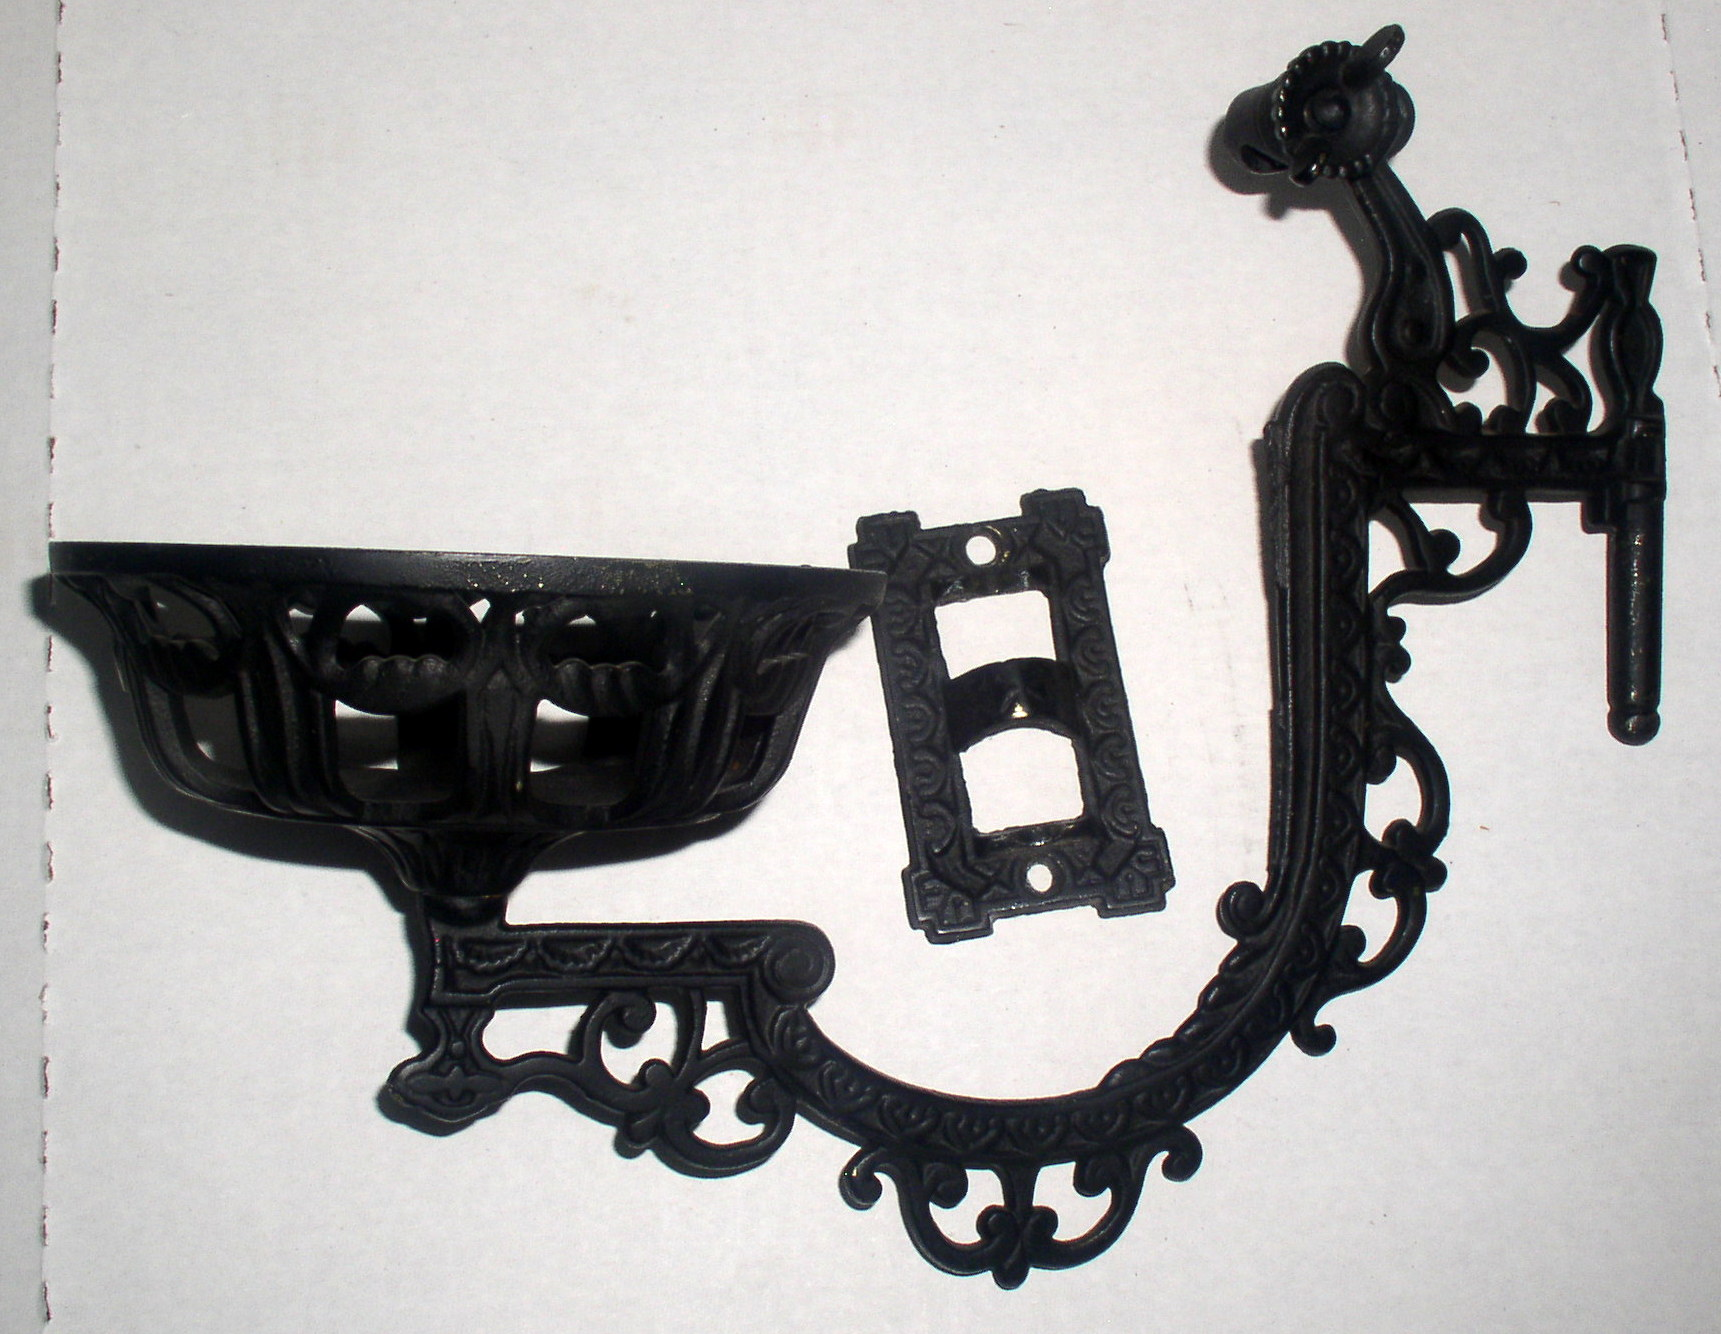 Antique Cast Iron Wall Mount Kerosene Oil Lamp Bracket Holder, Complete Thingery Previews ...